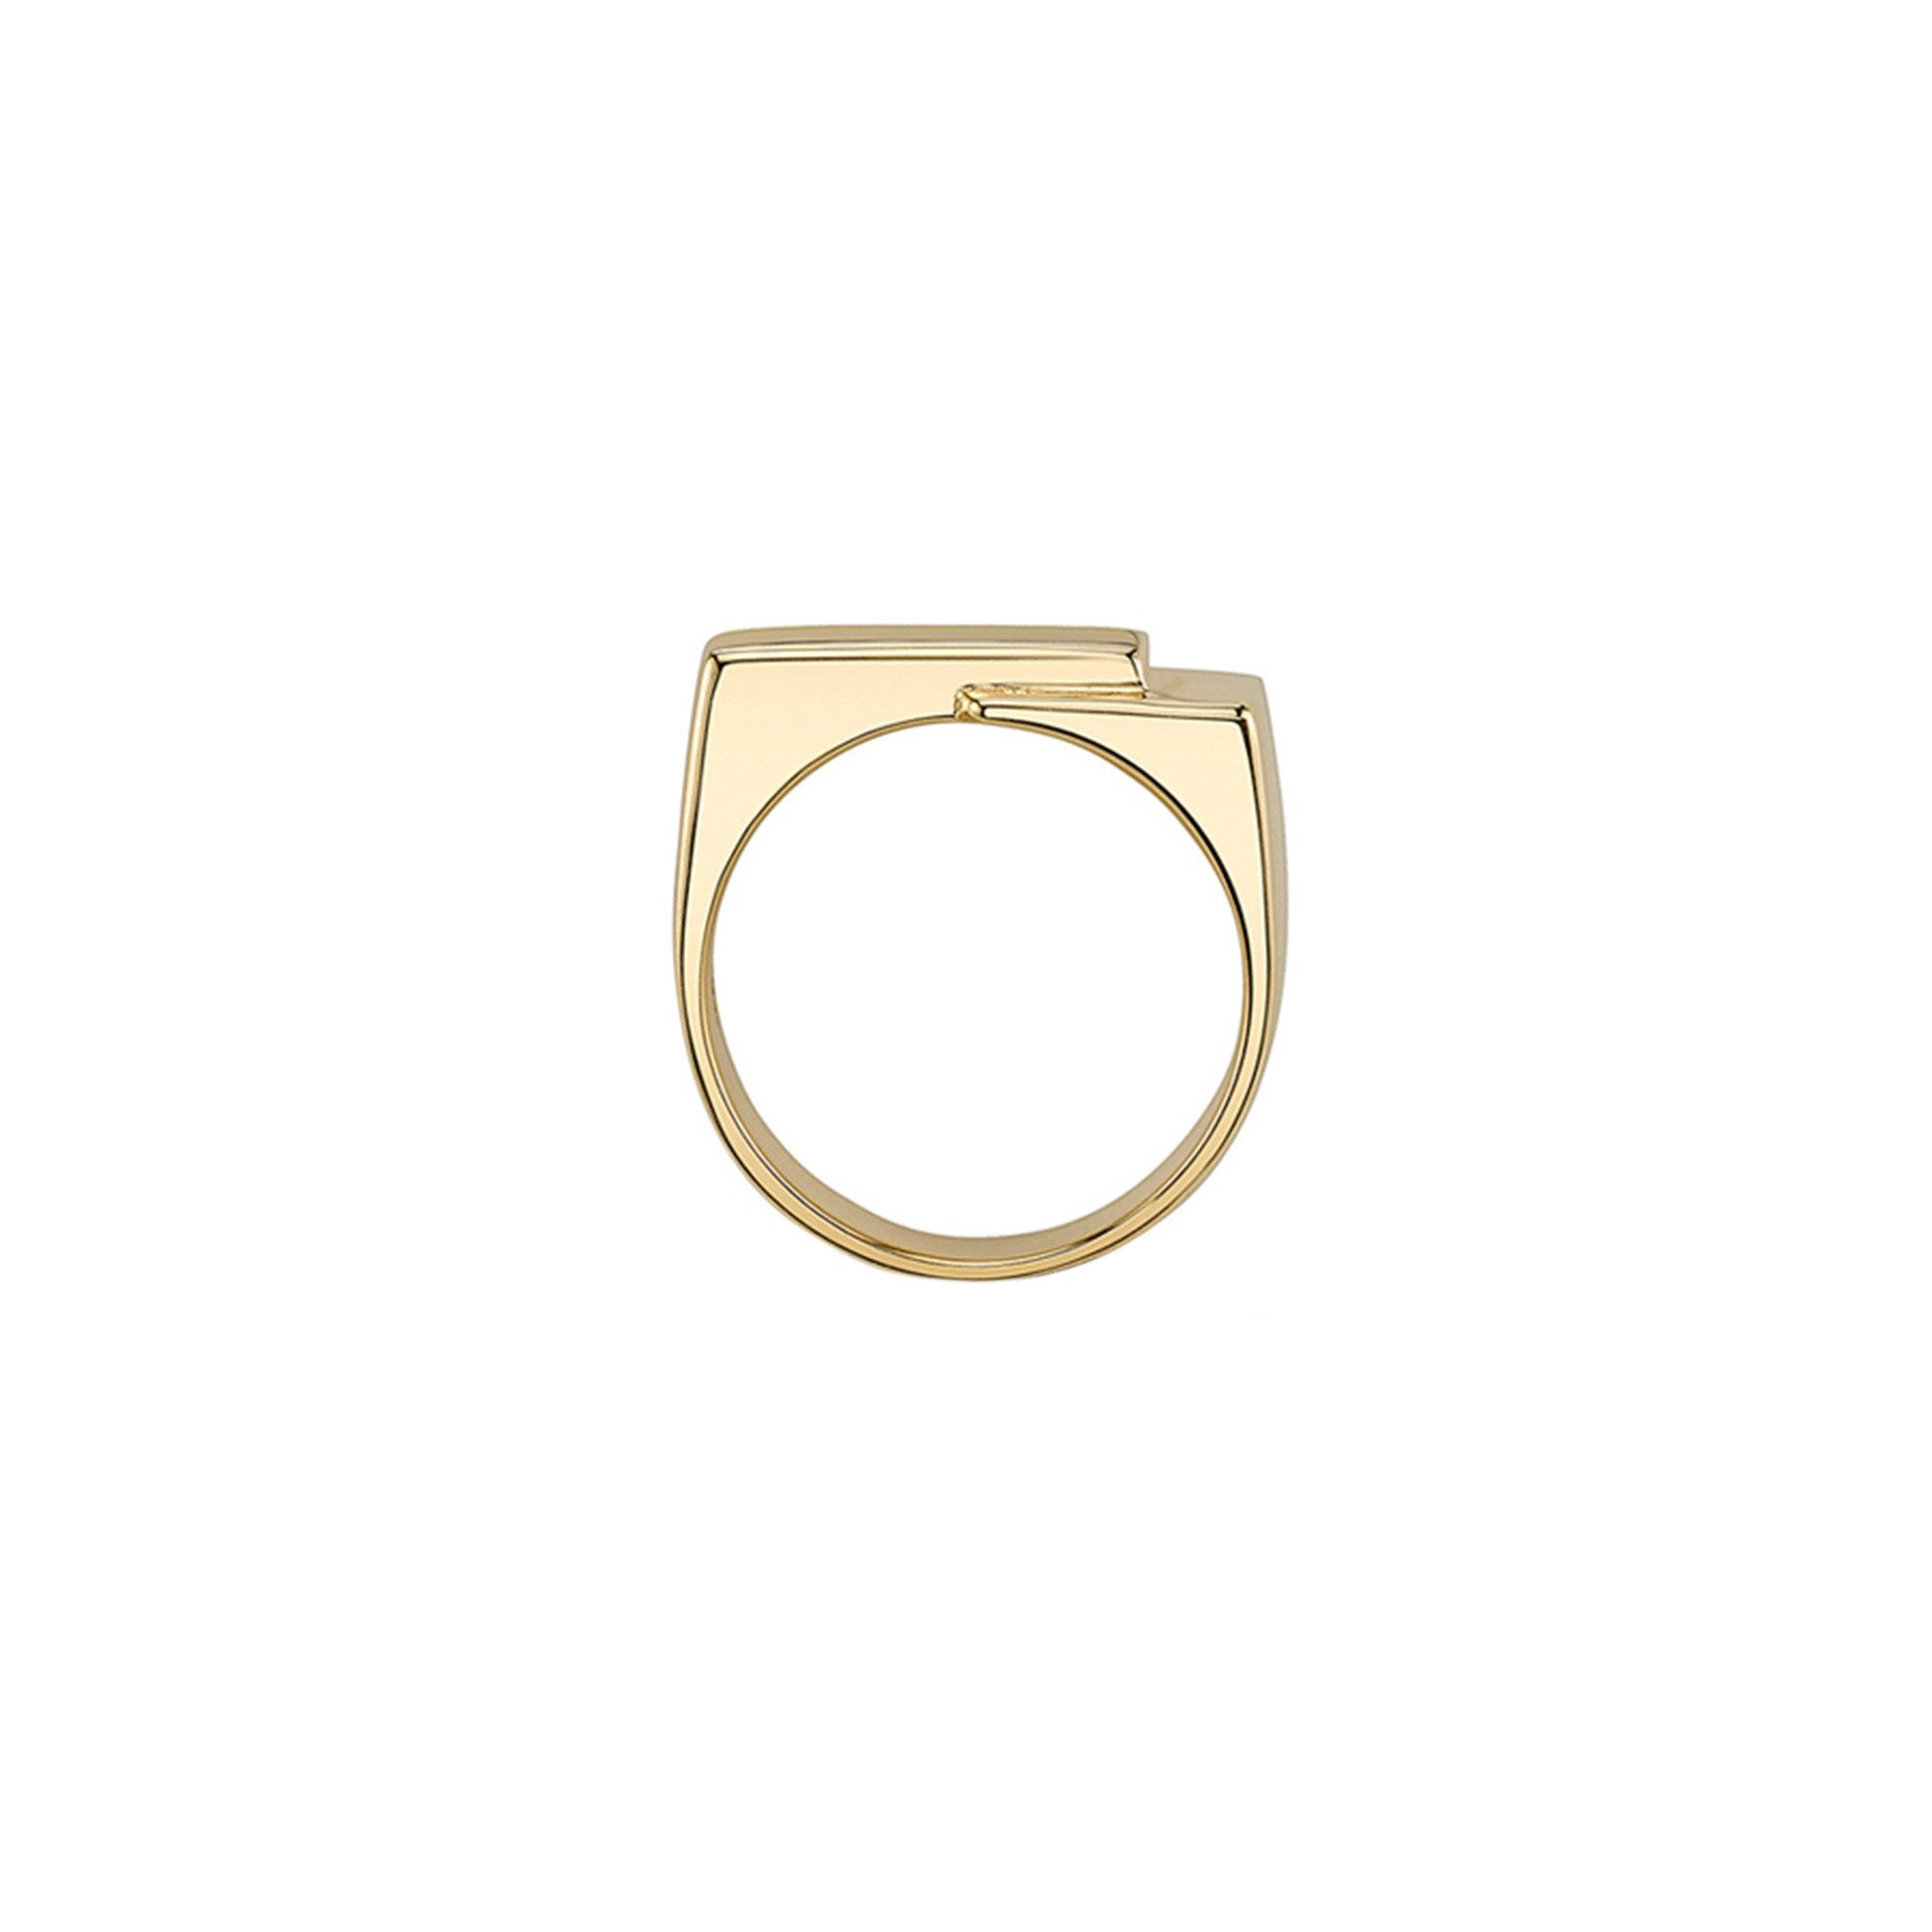 Lizzie Mandler Basic Overlap Pinky Ring - Rings - Broken English Jewelry